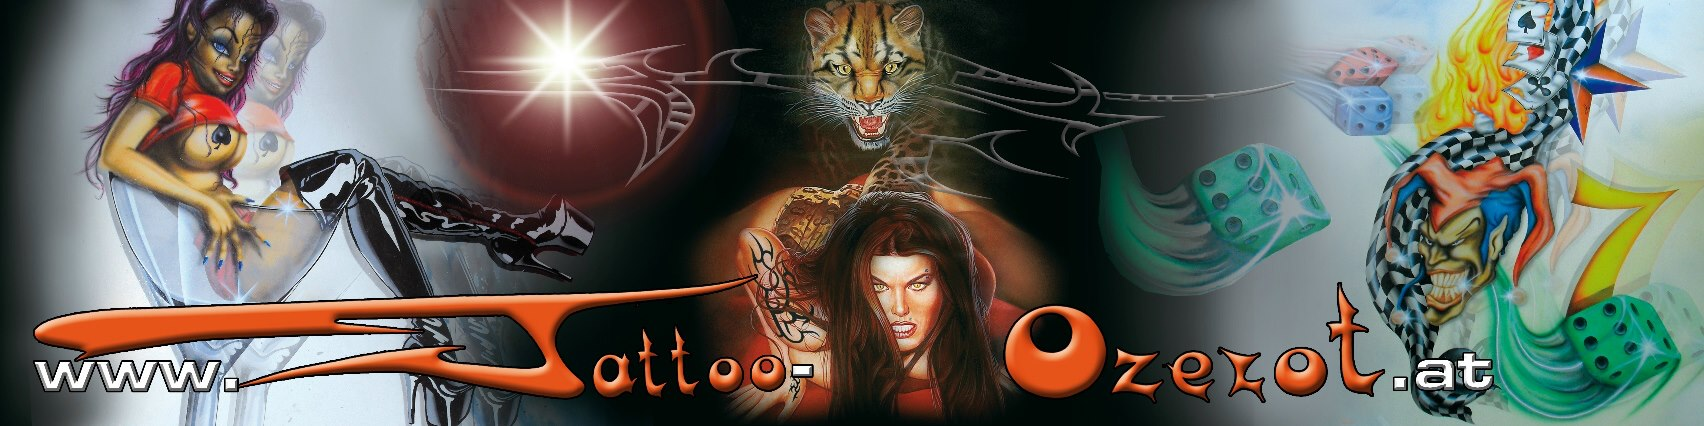 Tattoo & Piercing Studio Ozelot